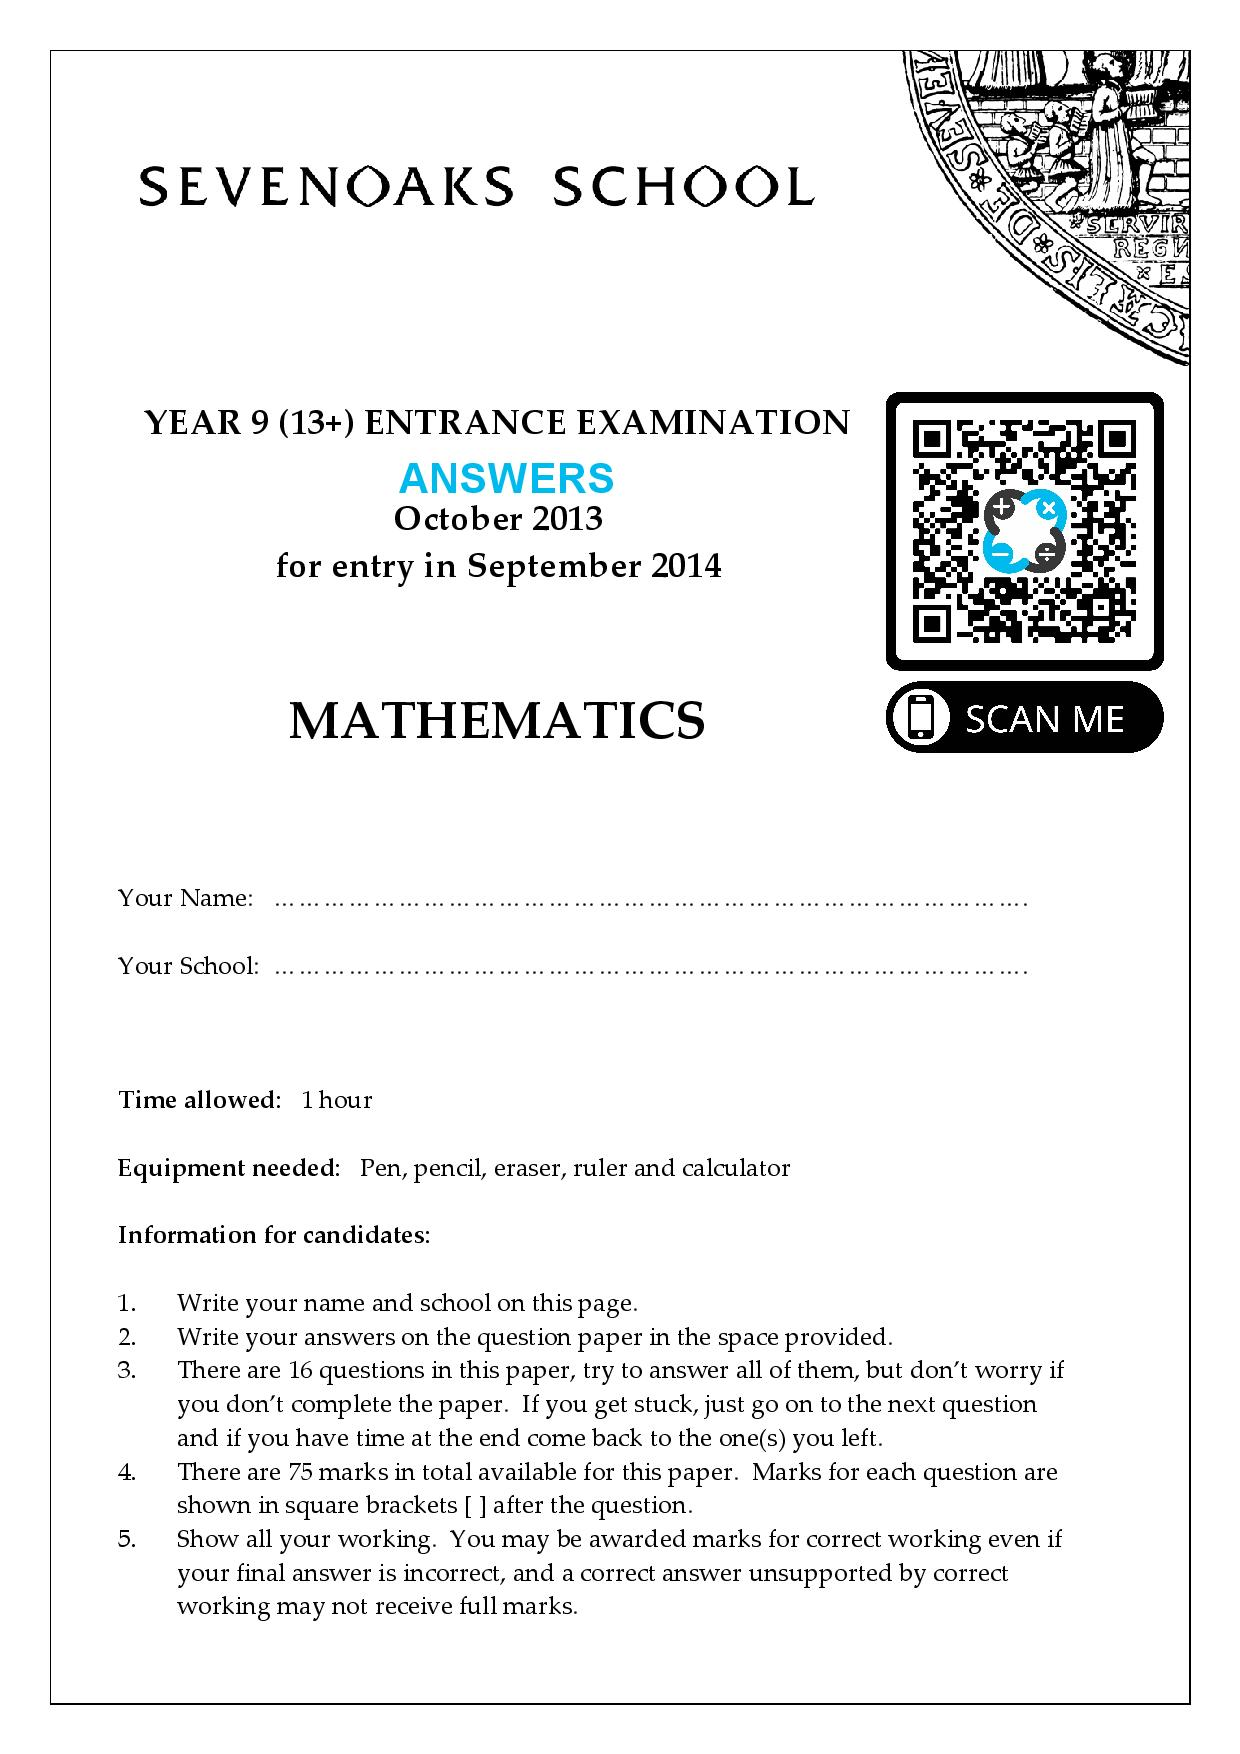 YEAR 9 13 ENTRANCE EXAMINATION 2013 Answer Paper page 001